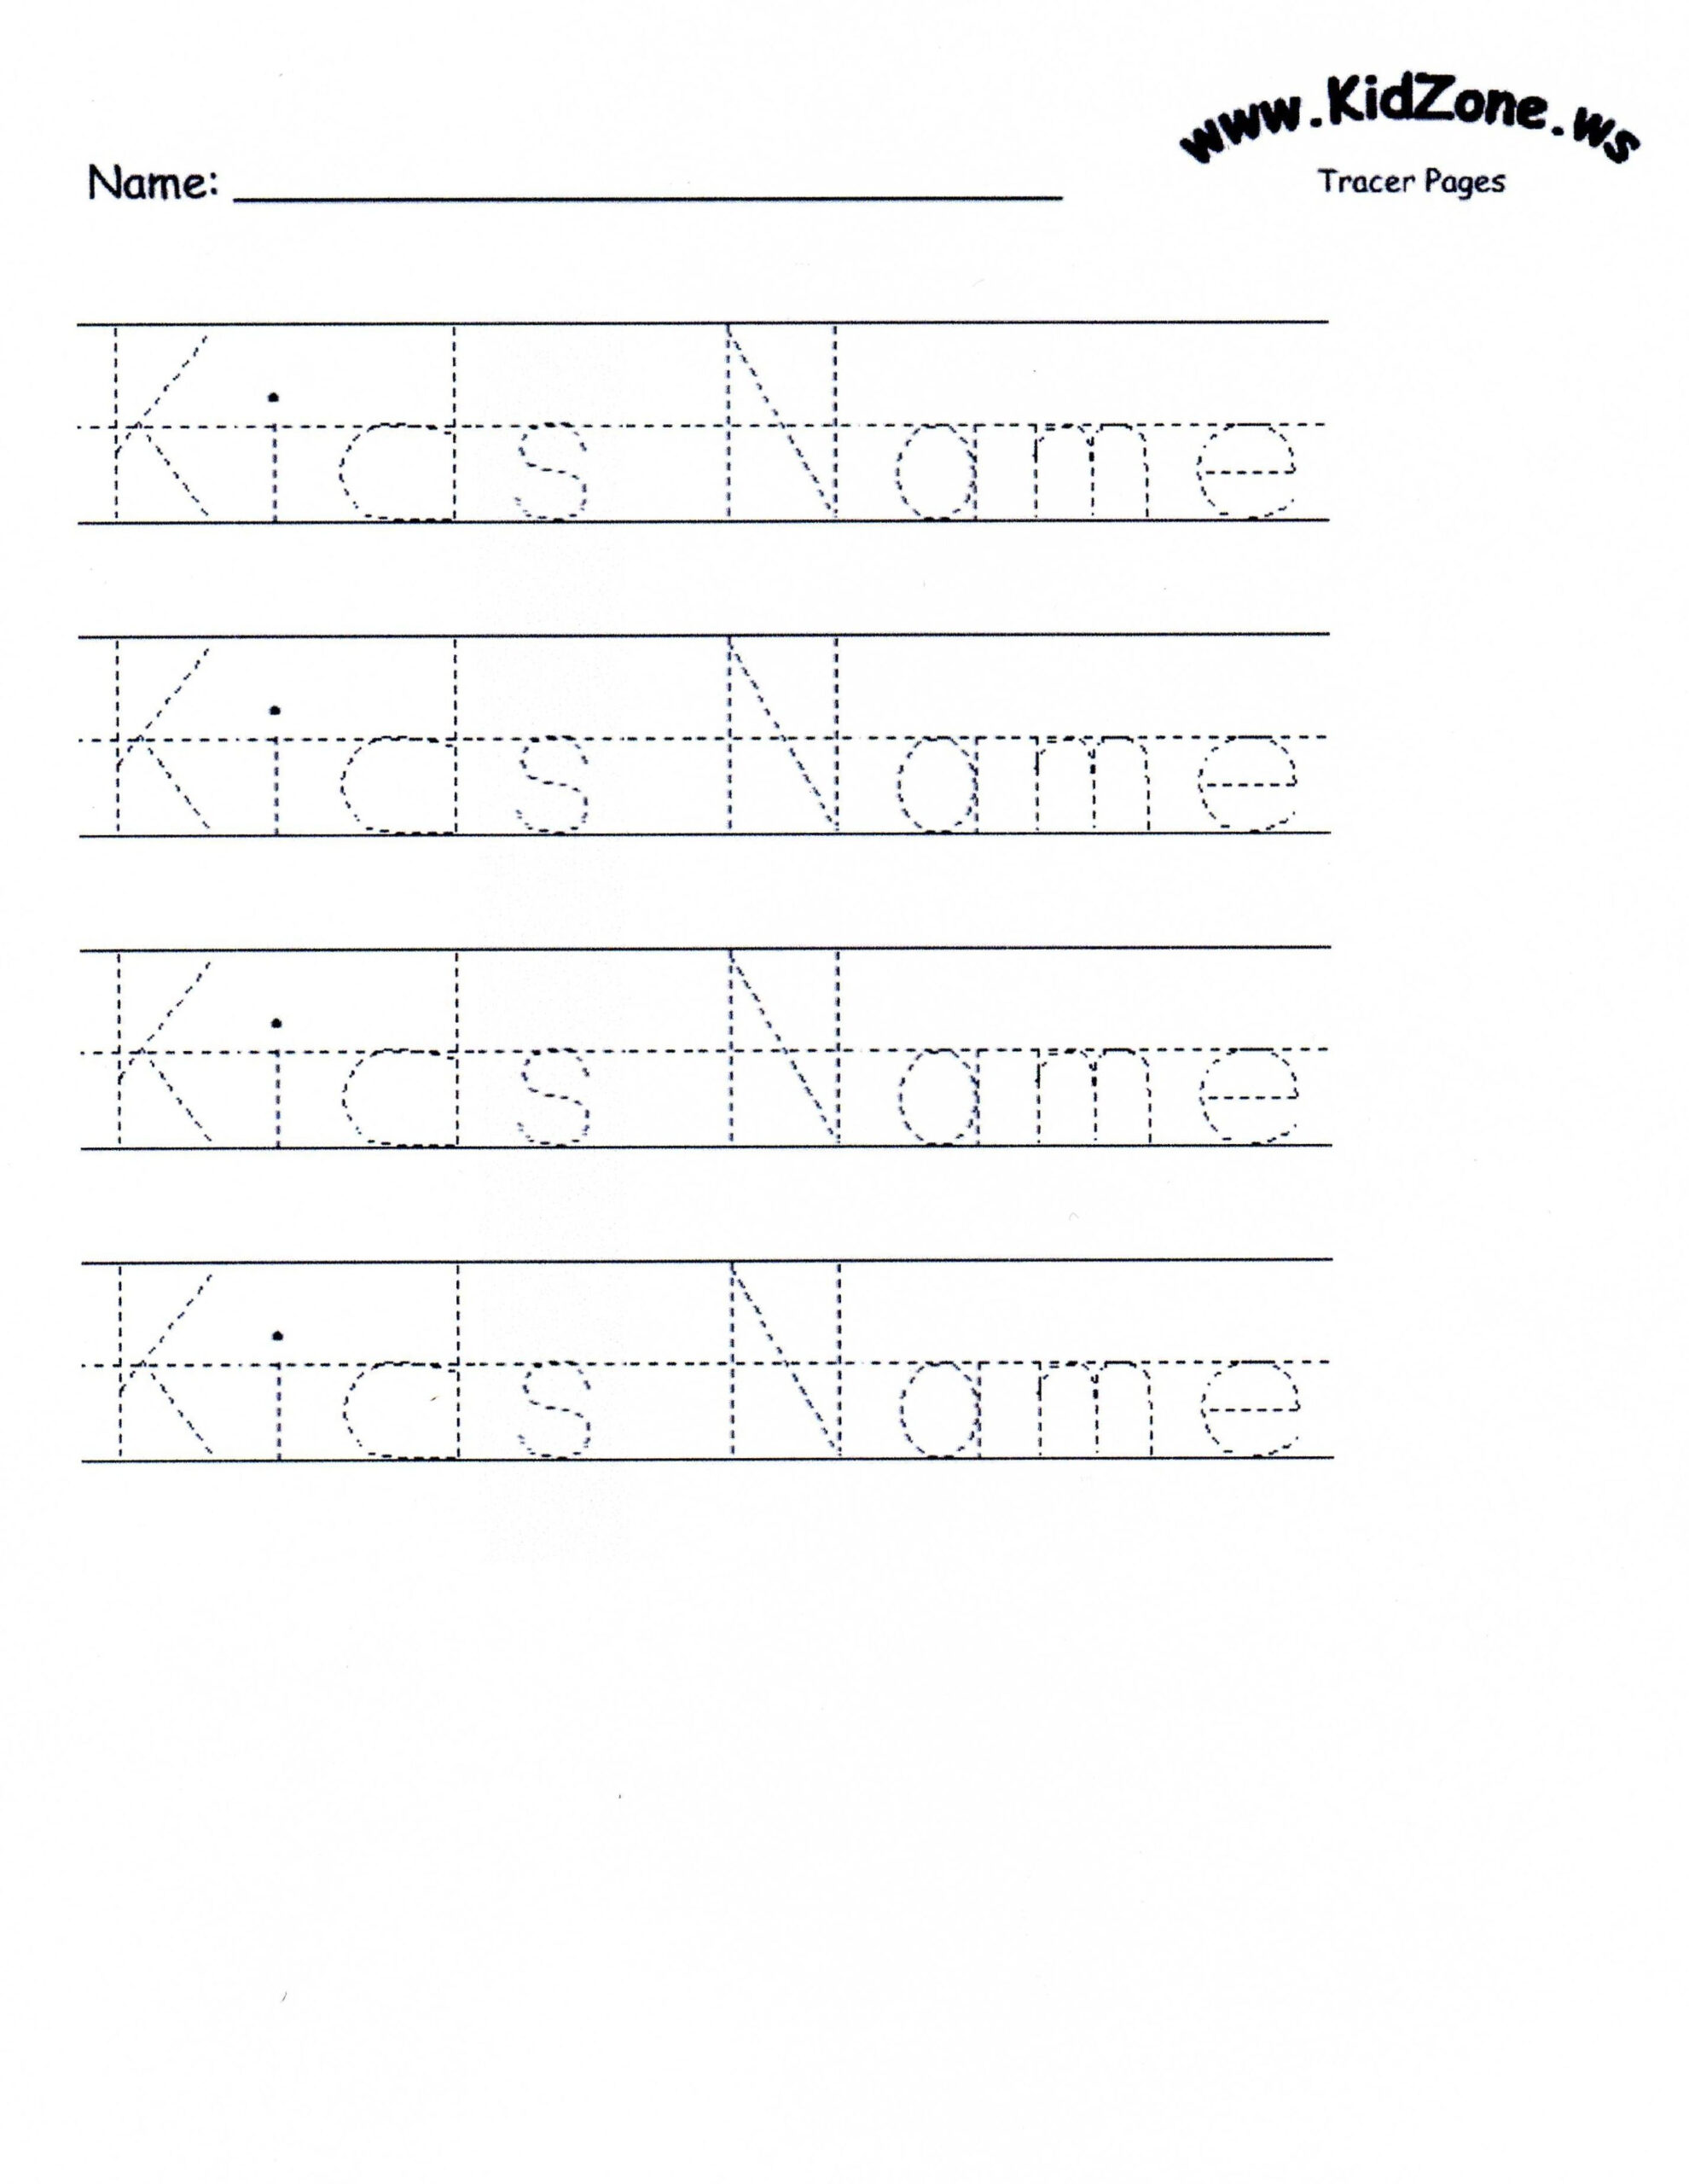 Customizable Printable Letter Pages | Name Tracing within Name Tracing Kidzone